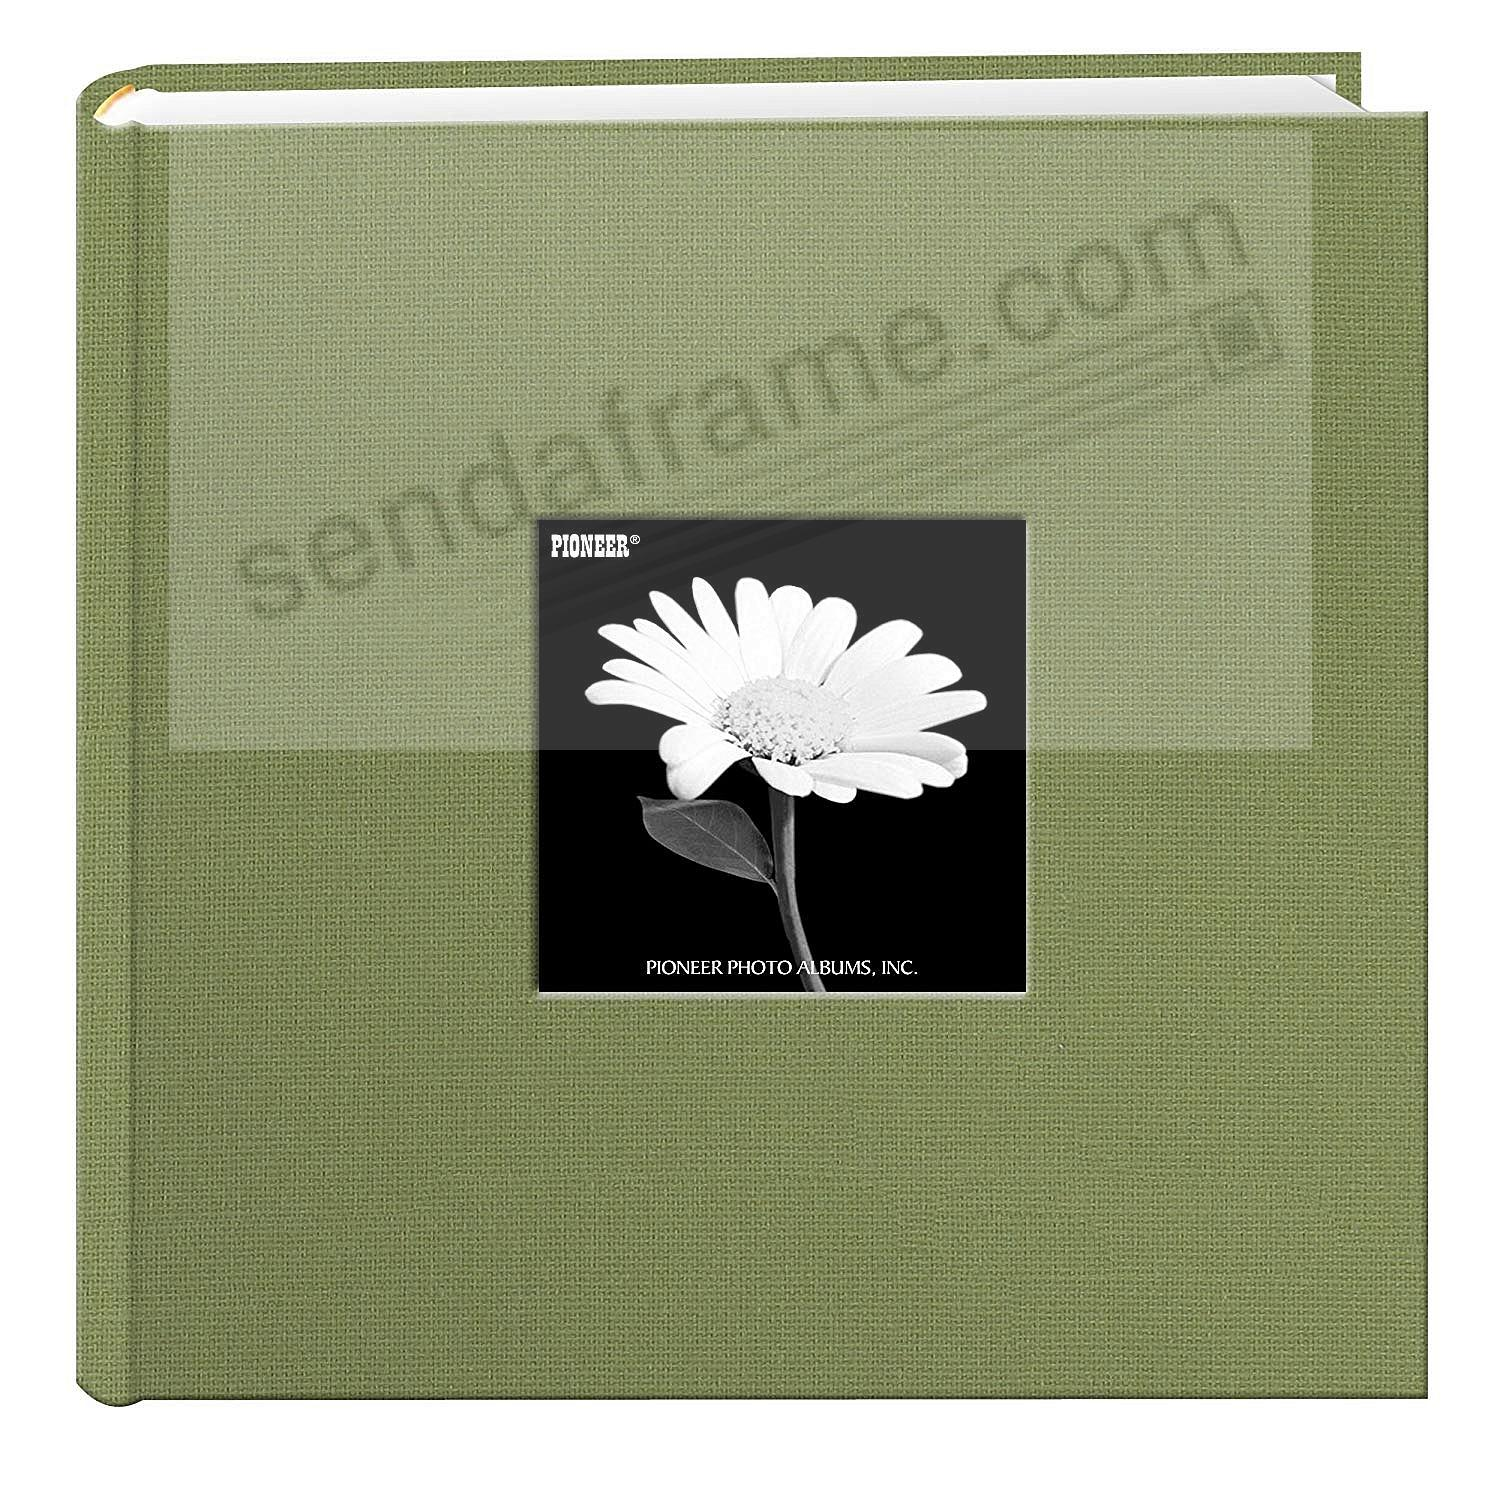 Sage-Green cloth 2-up frame photo album by Pioneer®